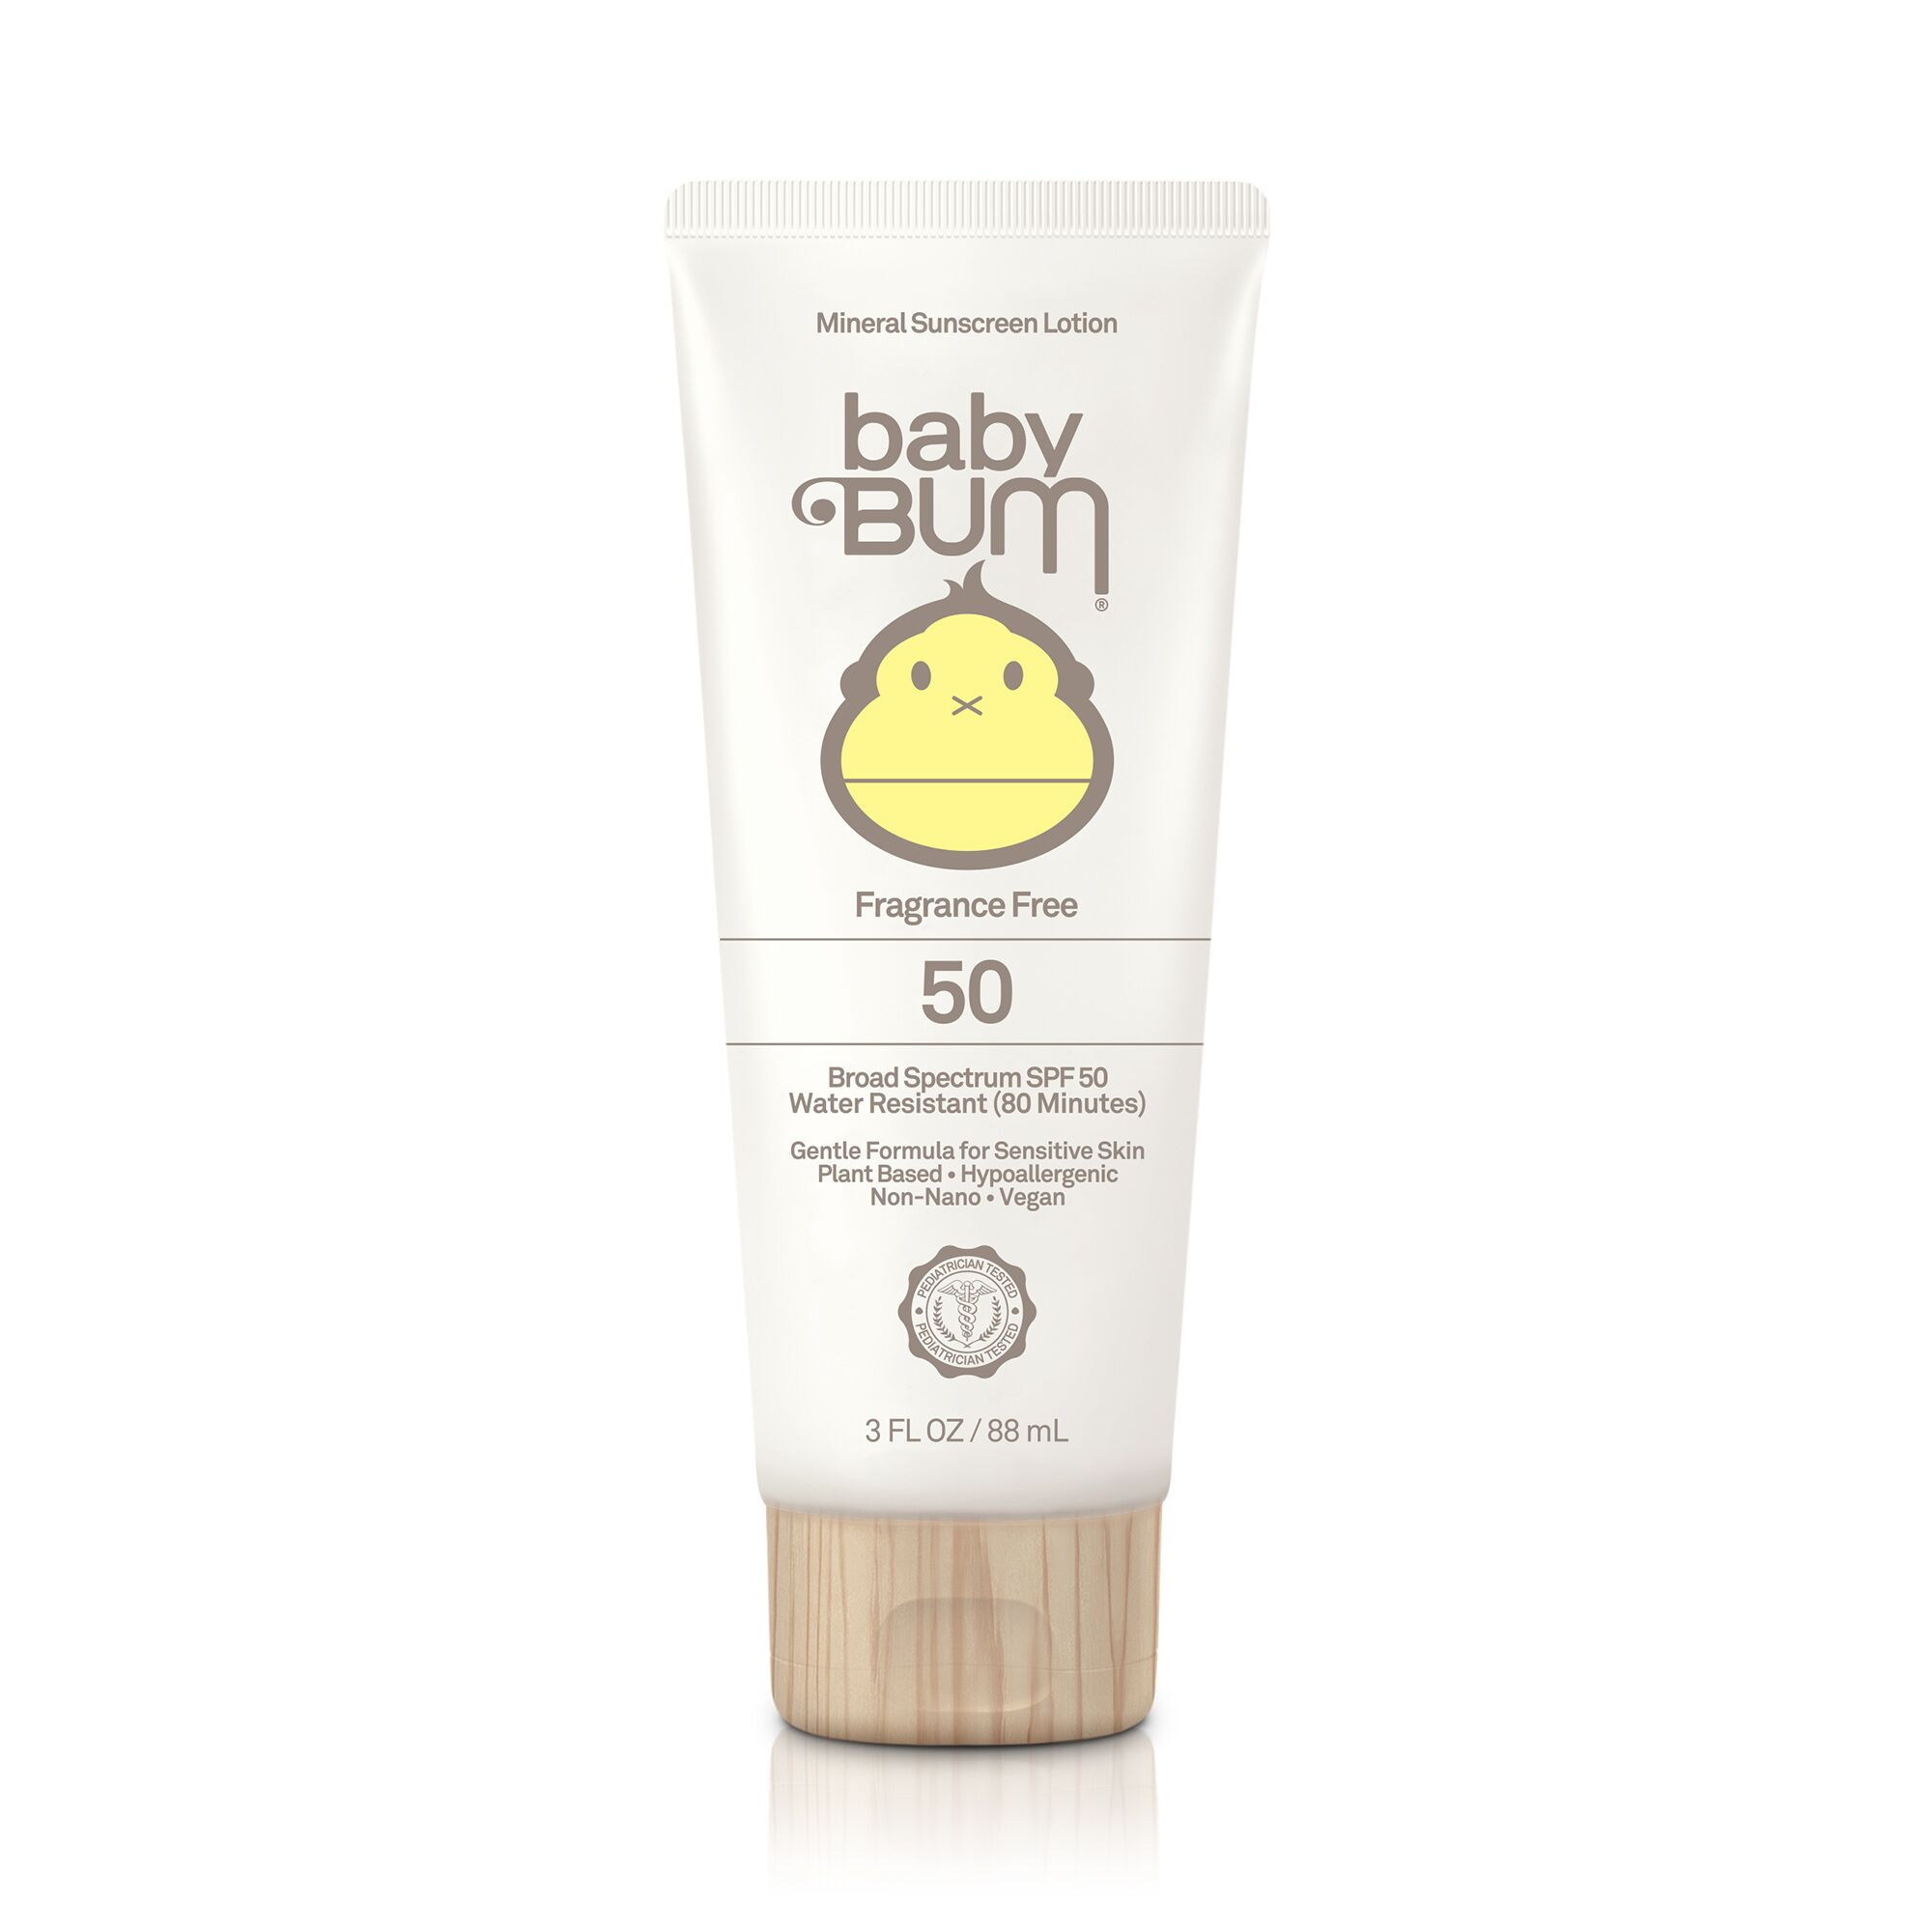 Coral reef-safe sunscreen